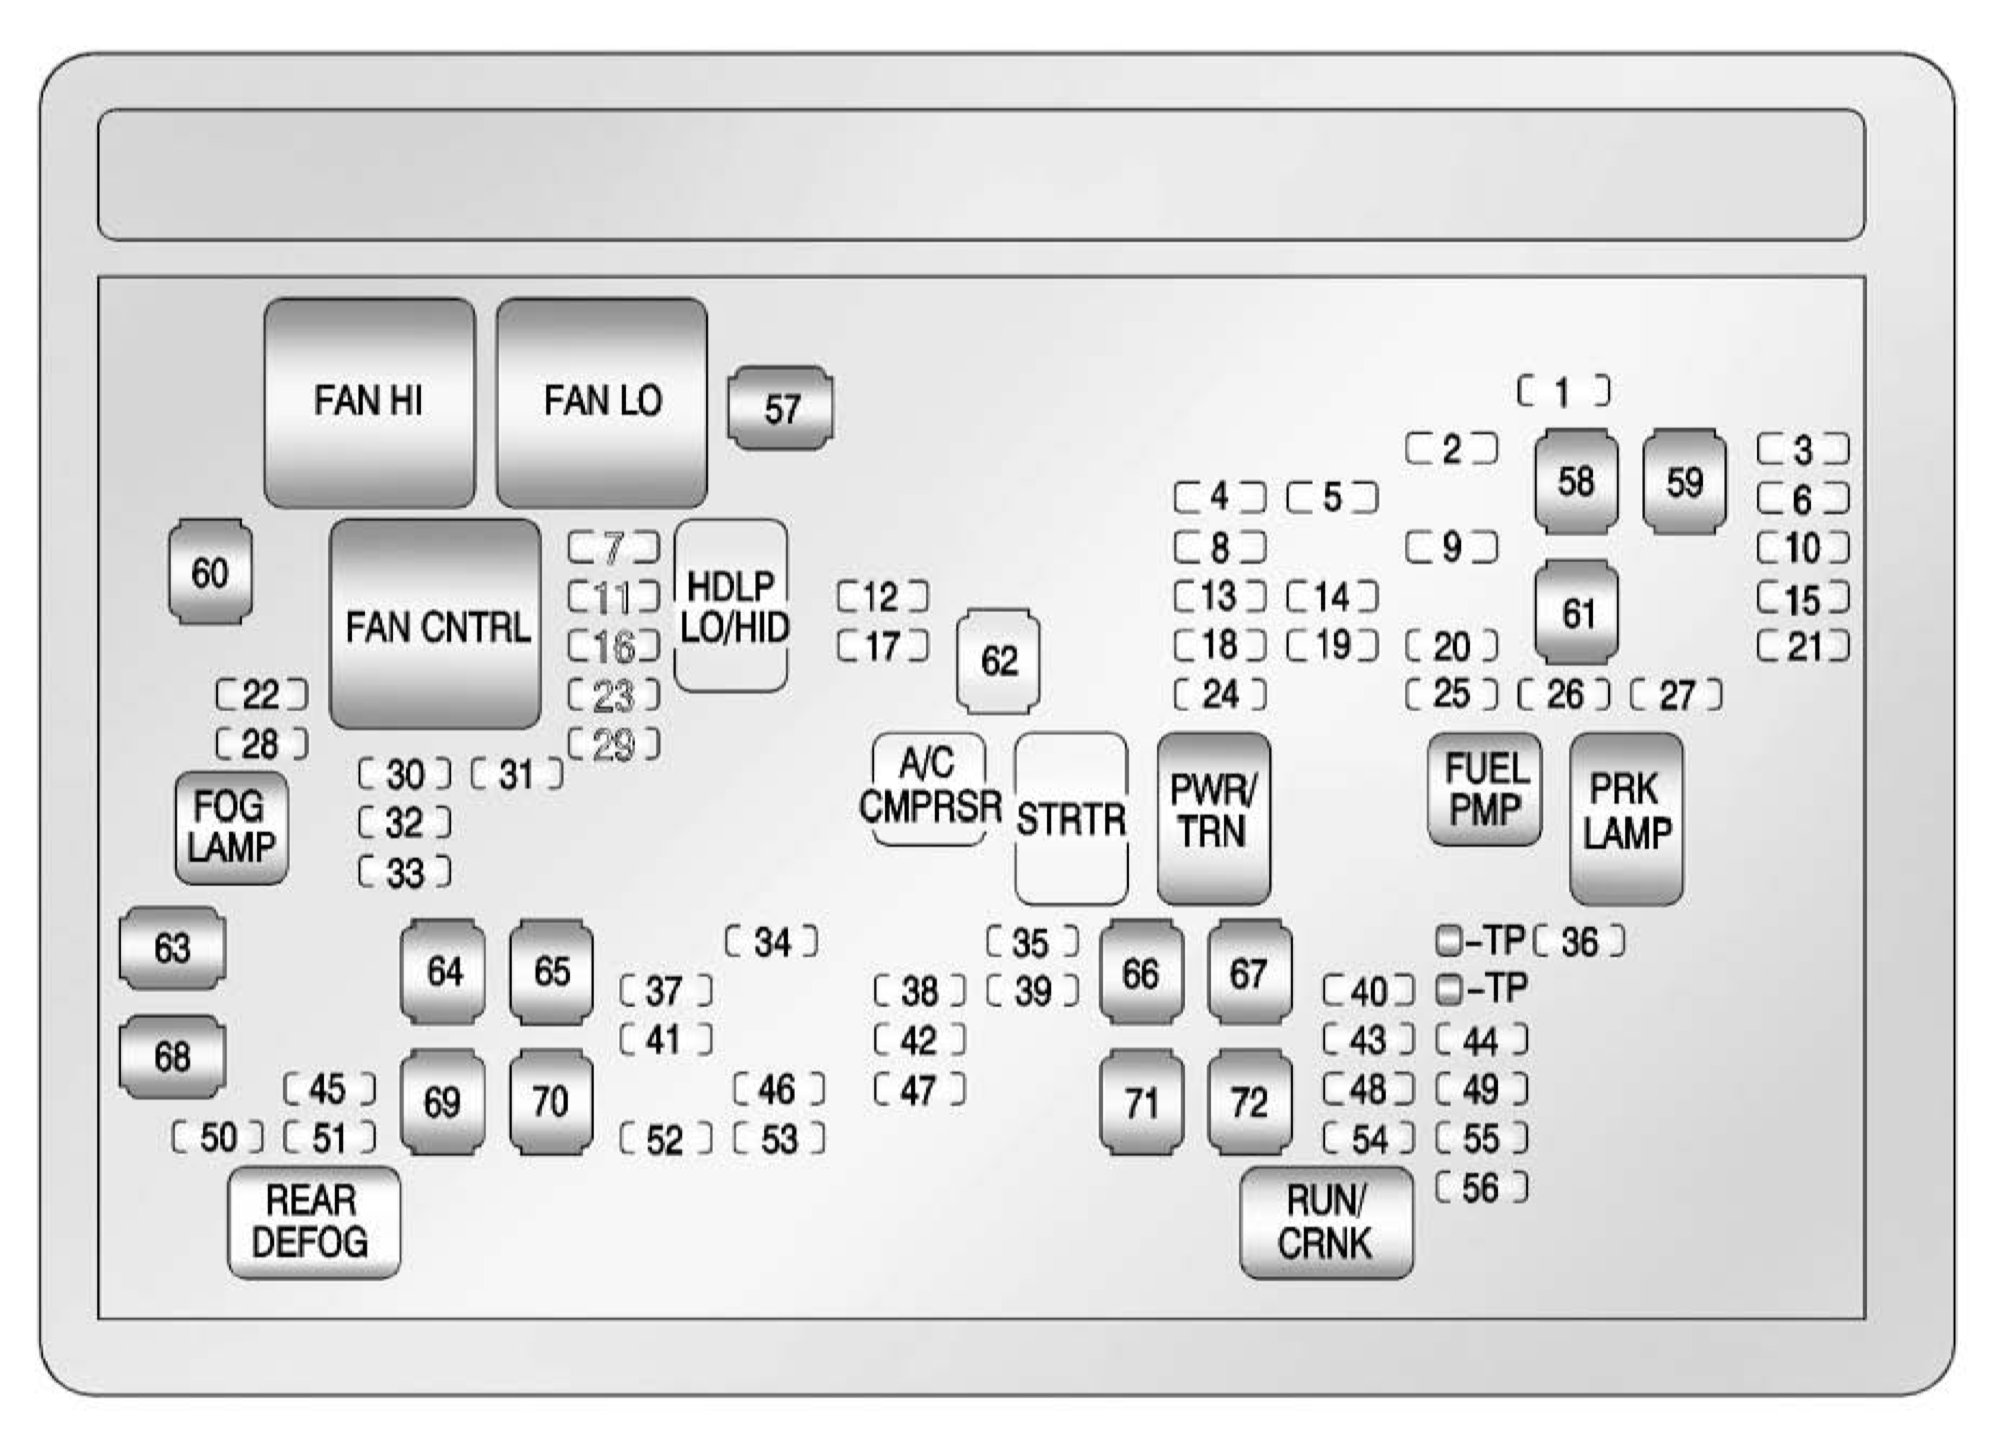 2012 F250 Fuse Box Wiring Library 2013 Ford F550 Panel Diagram Chevrolet Suburban 2011 2014 Auto